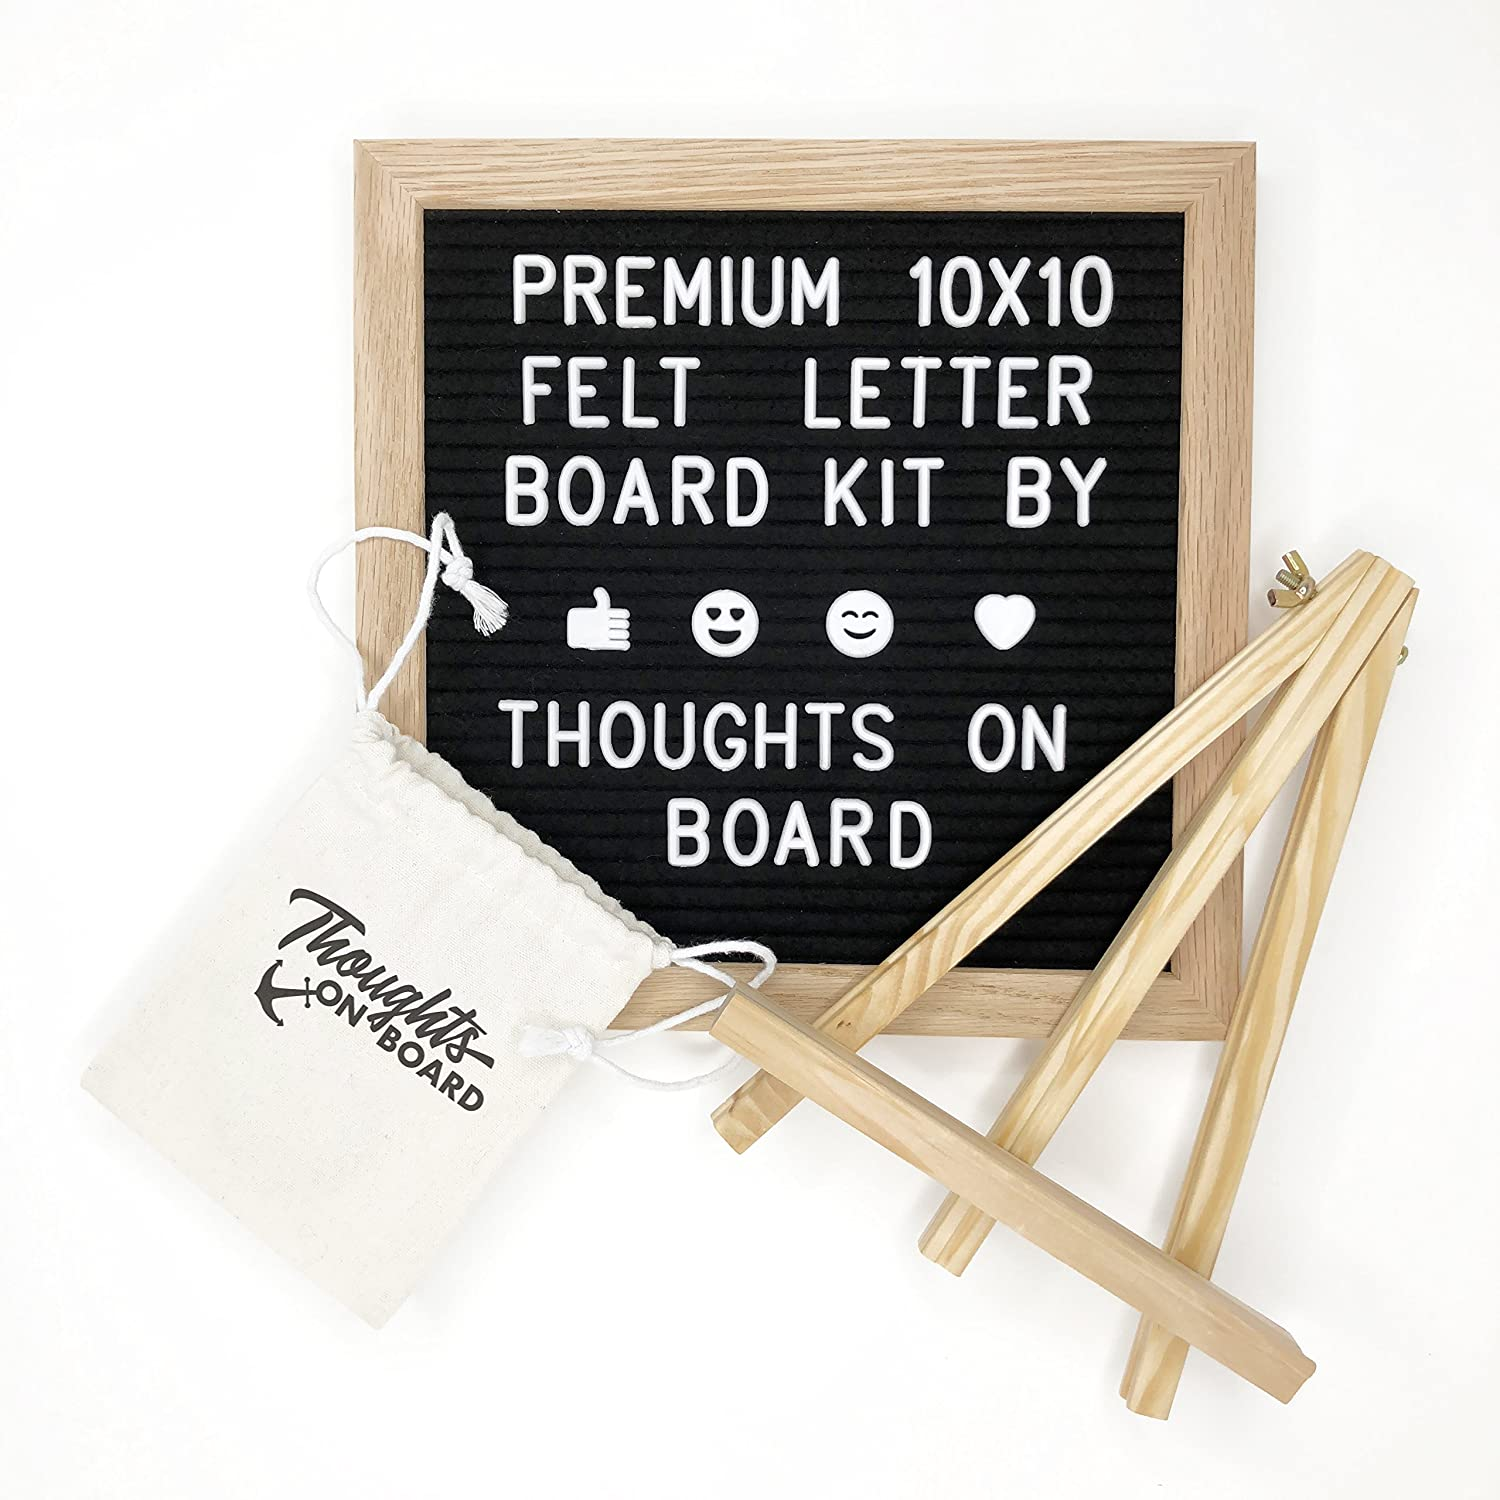 Premium Black Felt Letter Board Kit 10x10 inch, 340 Letters, Numbers & Emoji's. Message Board Sign, Wall Mount, Oak Wood Frame, with Display Stand Canvas Bag & Pair of Scissors - by Thoughts On Board